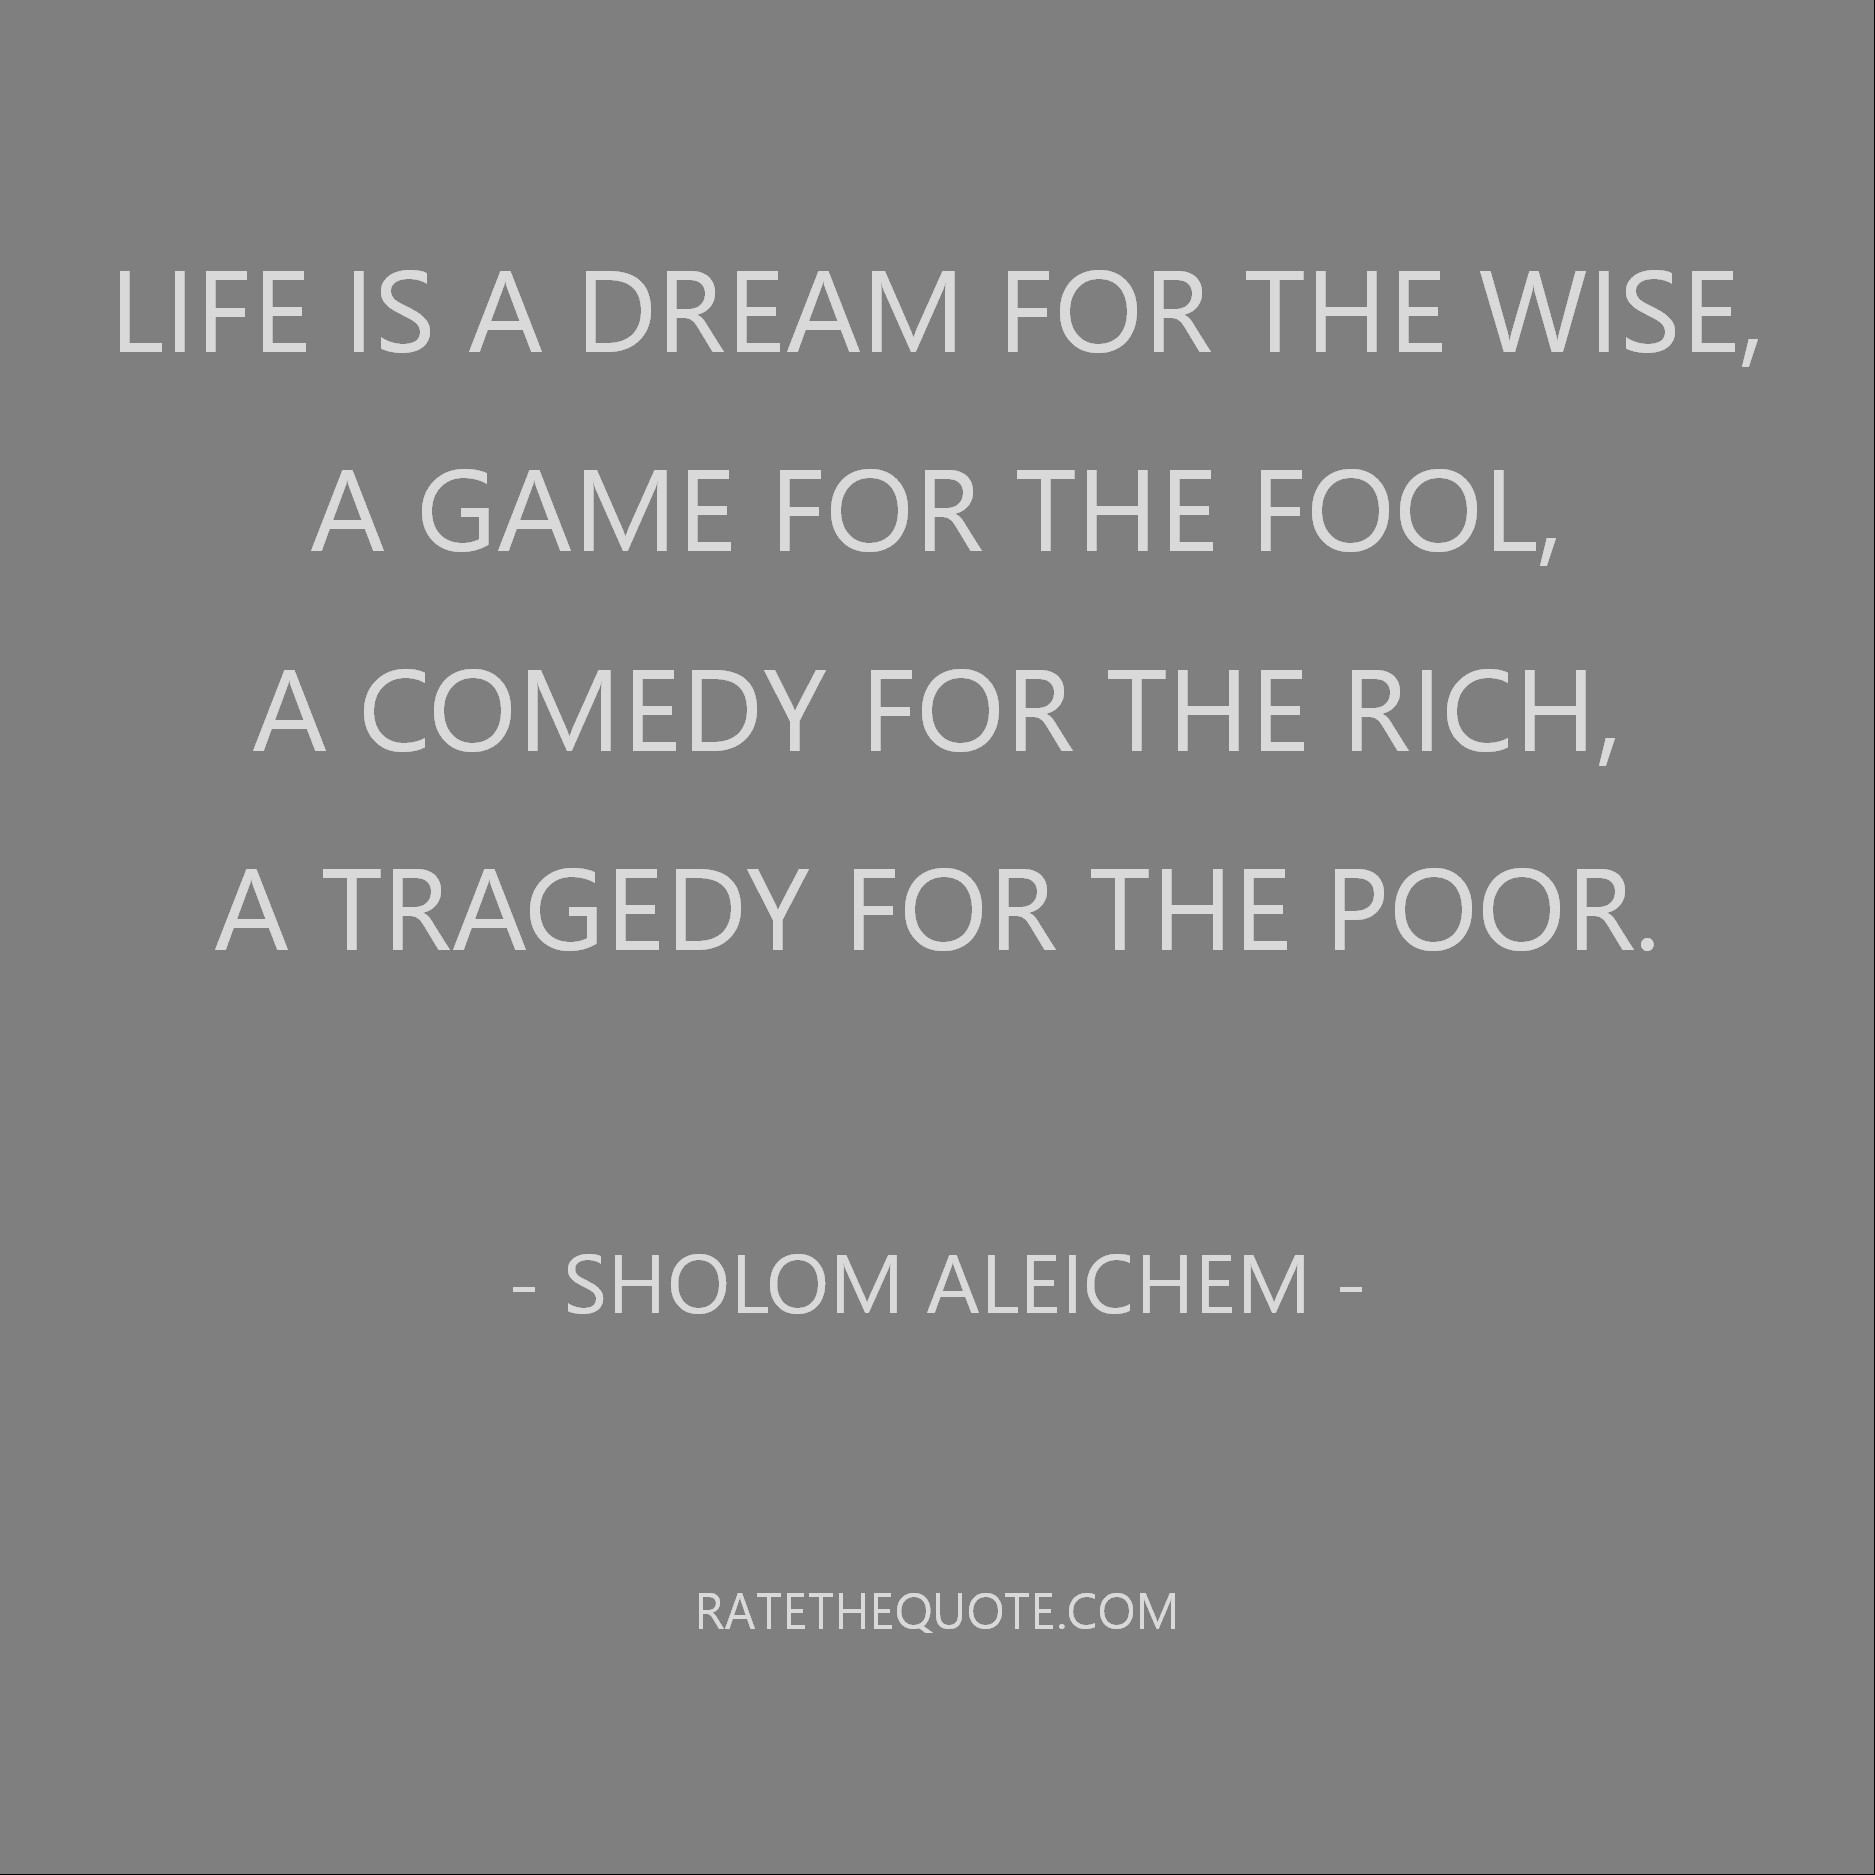 Life is a dream for the wise, a game for the fool, a comedy for the rich, a tragedy for the poor. Sholom Aleichem